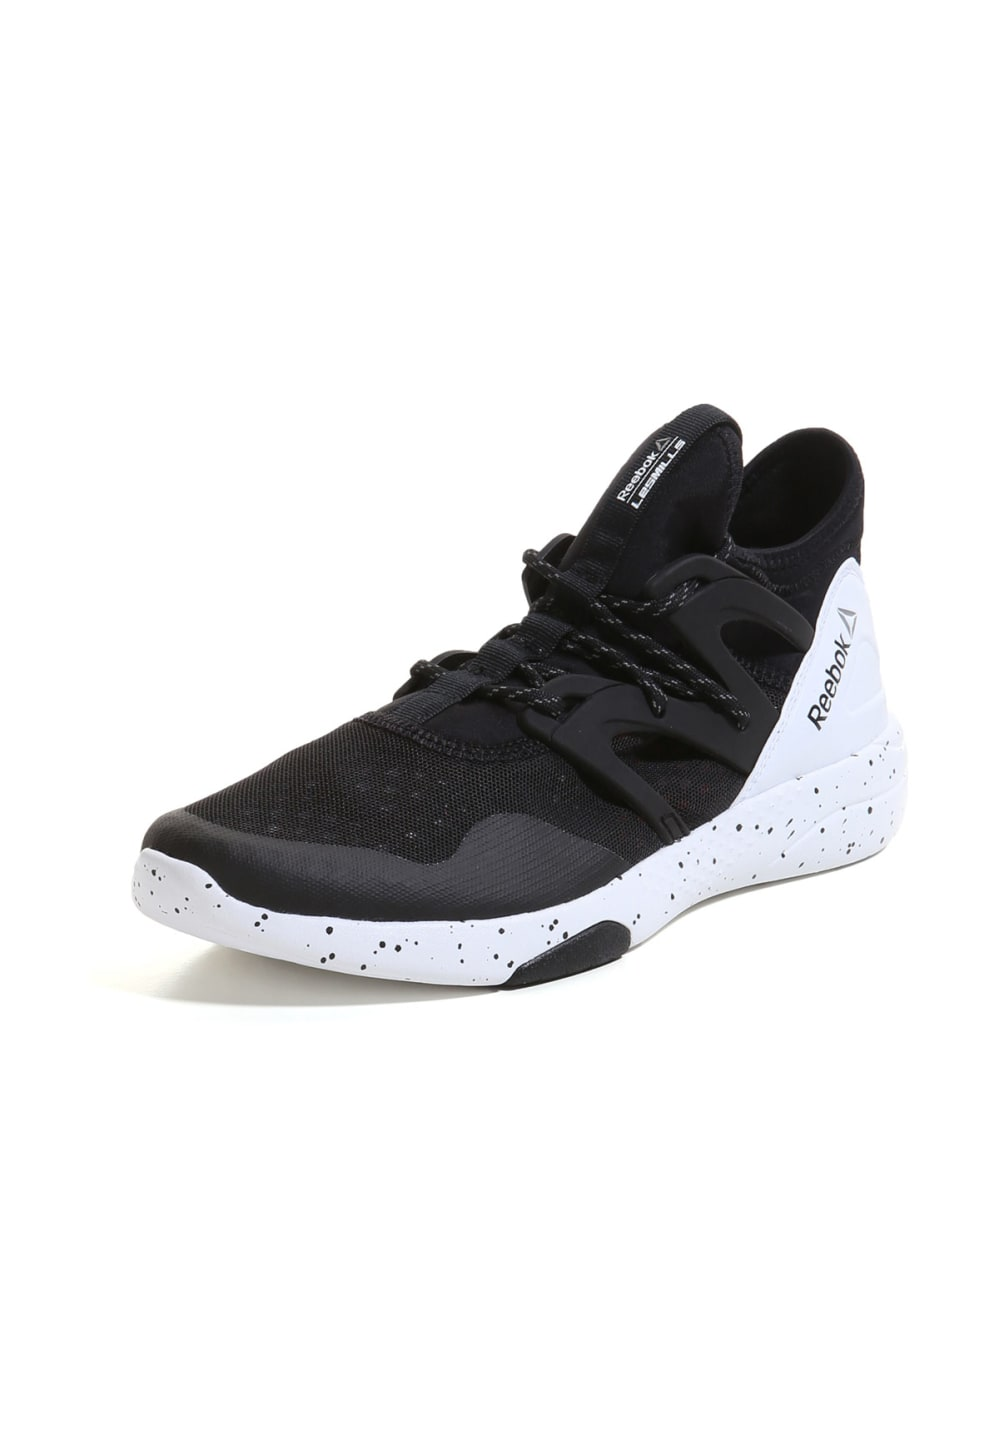 For Fitness Black Hayasu Mills Les 21run Shoes Women Reebok awtPXqP